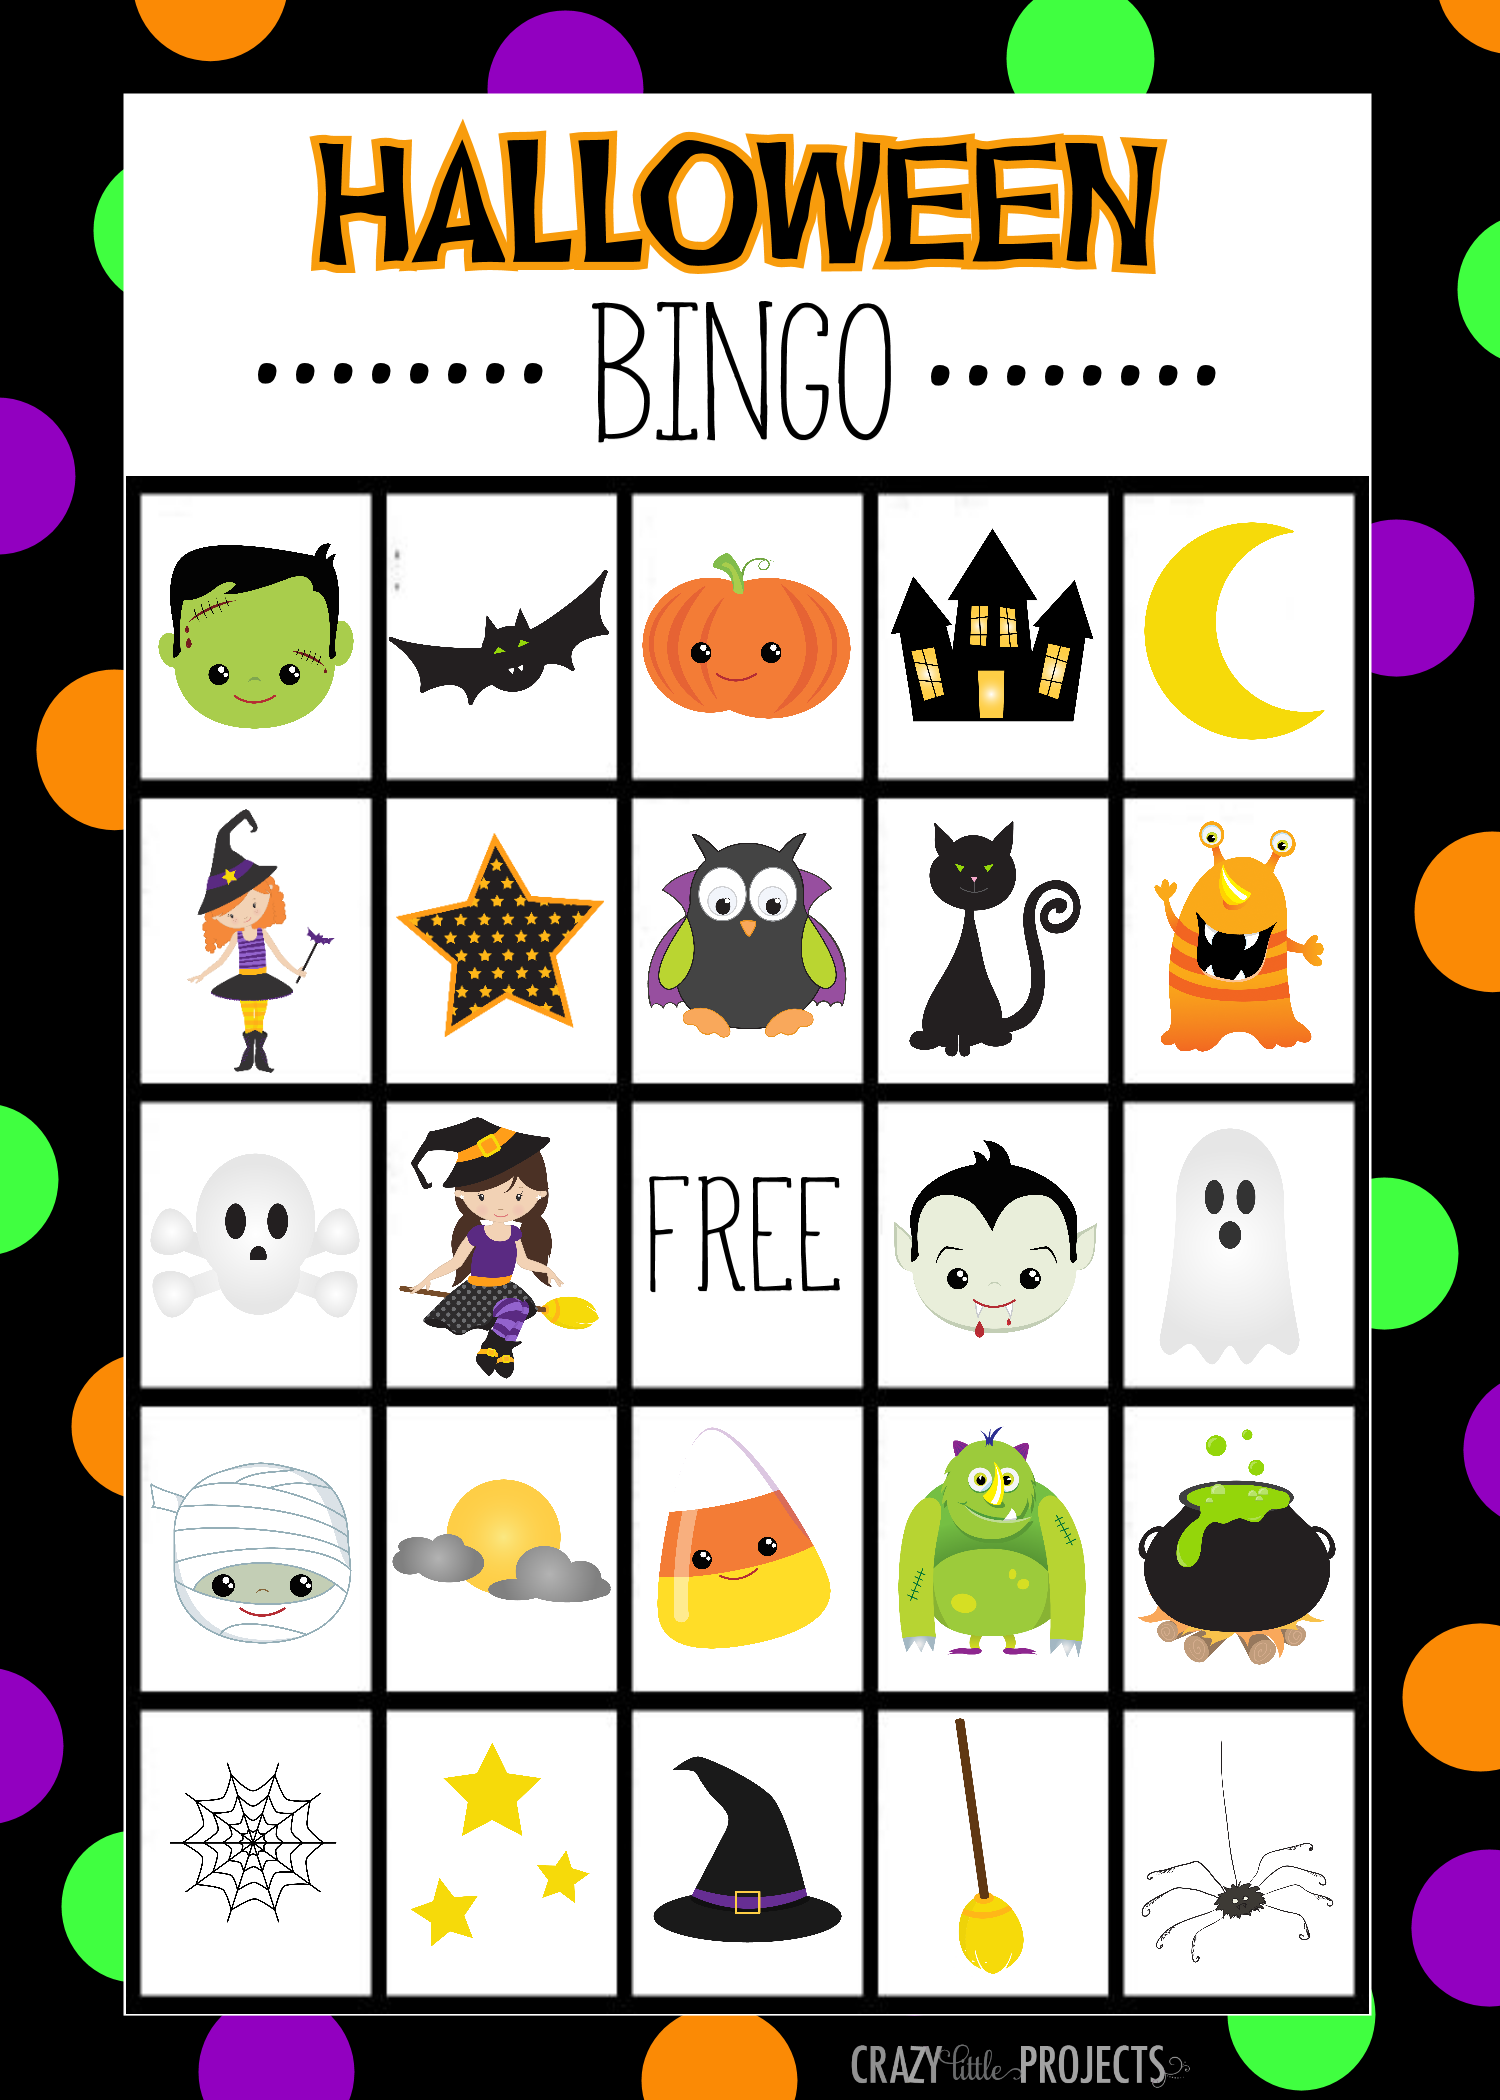 Accomplished image intended for halloween bingo printable